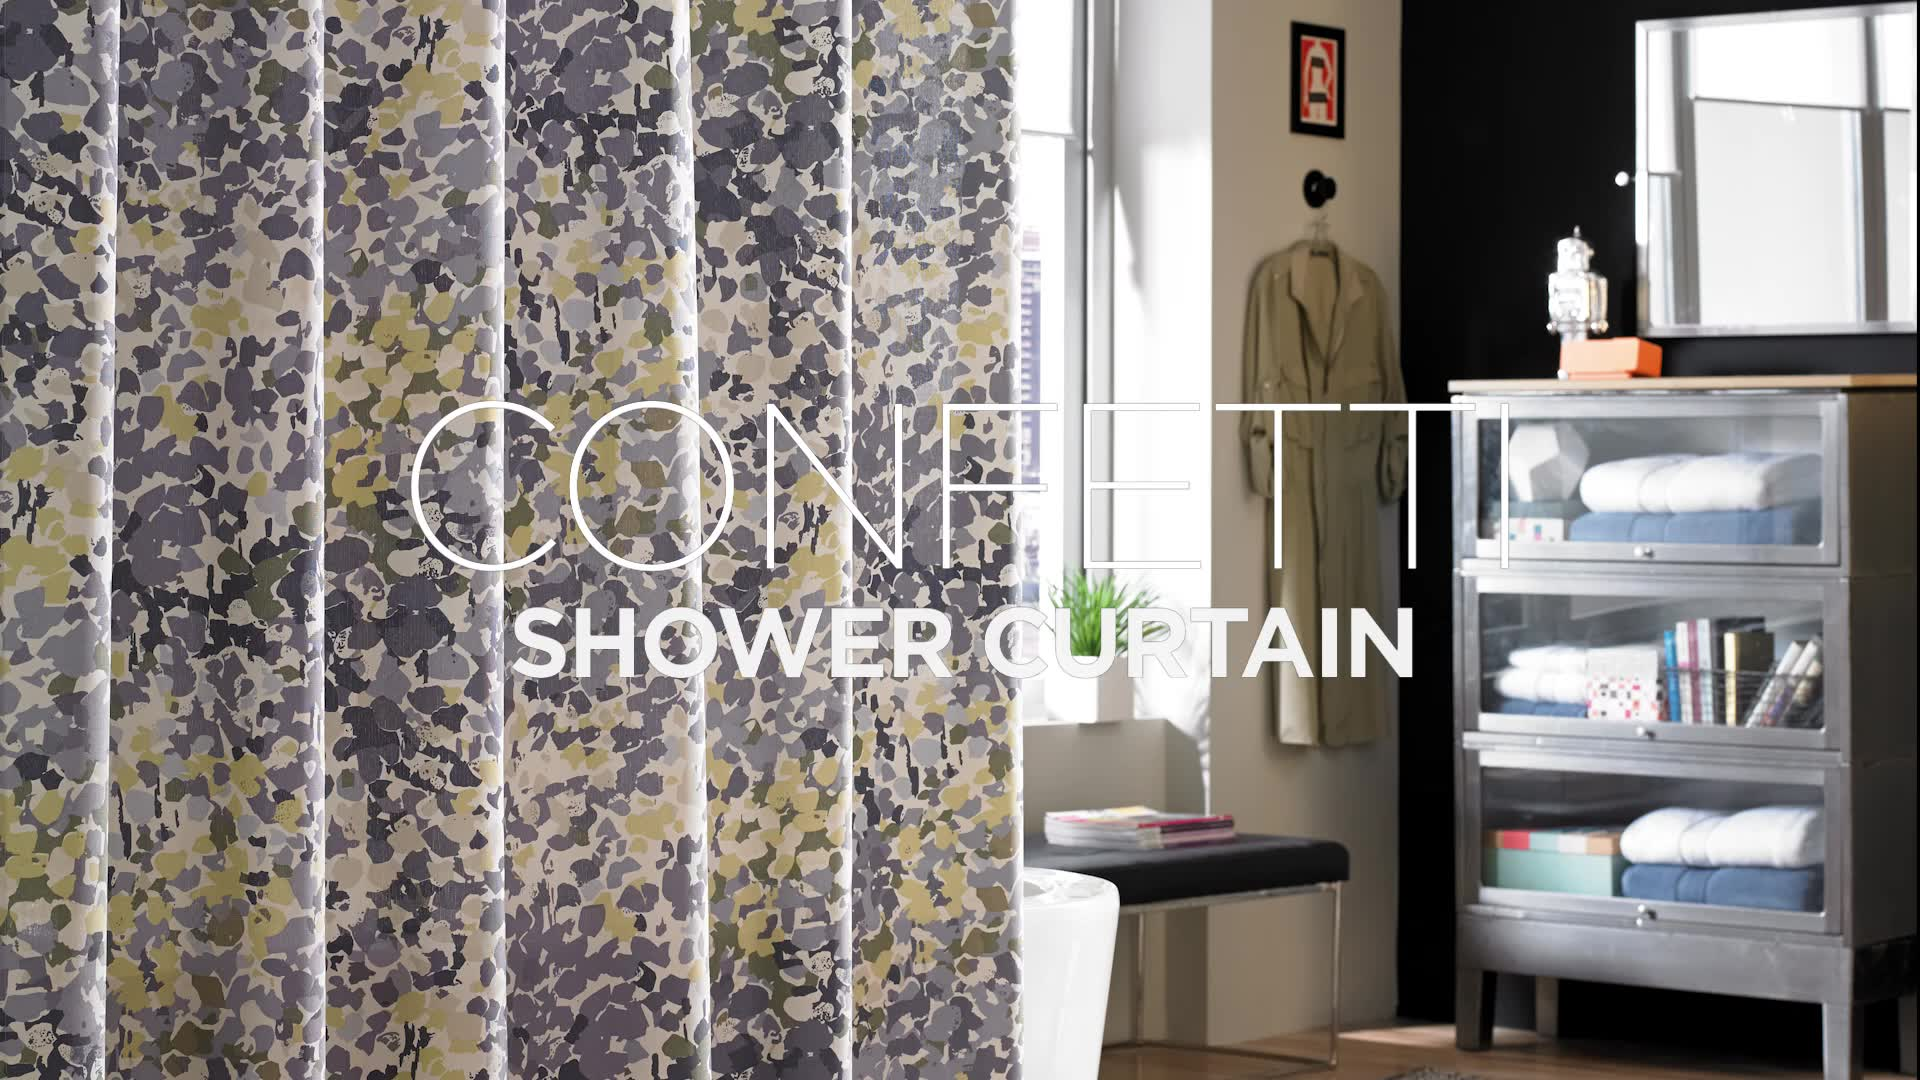 kenneth curtains rods pastel curtain rod ideas home com double dollclique croscill cole shower depot